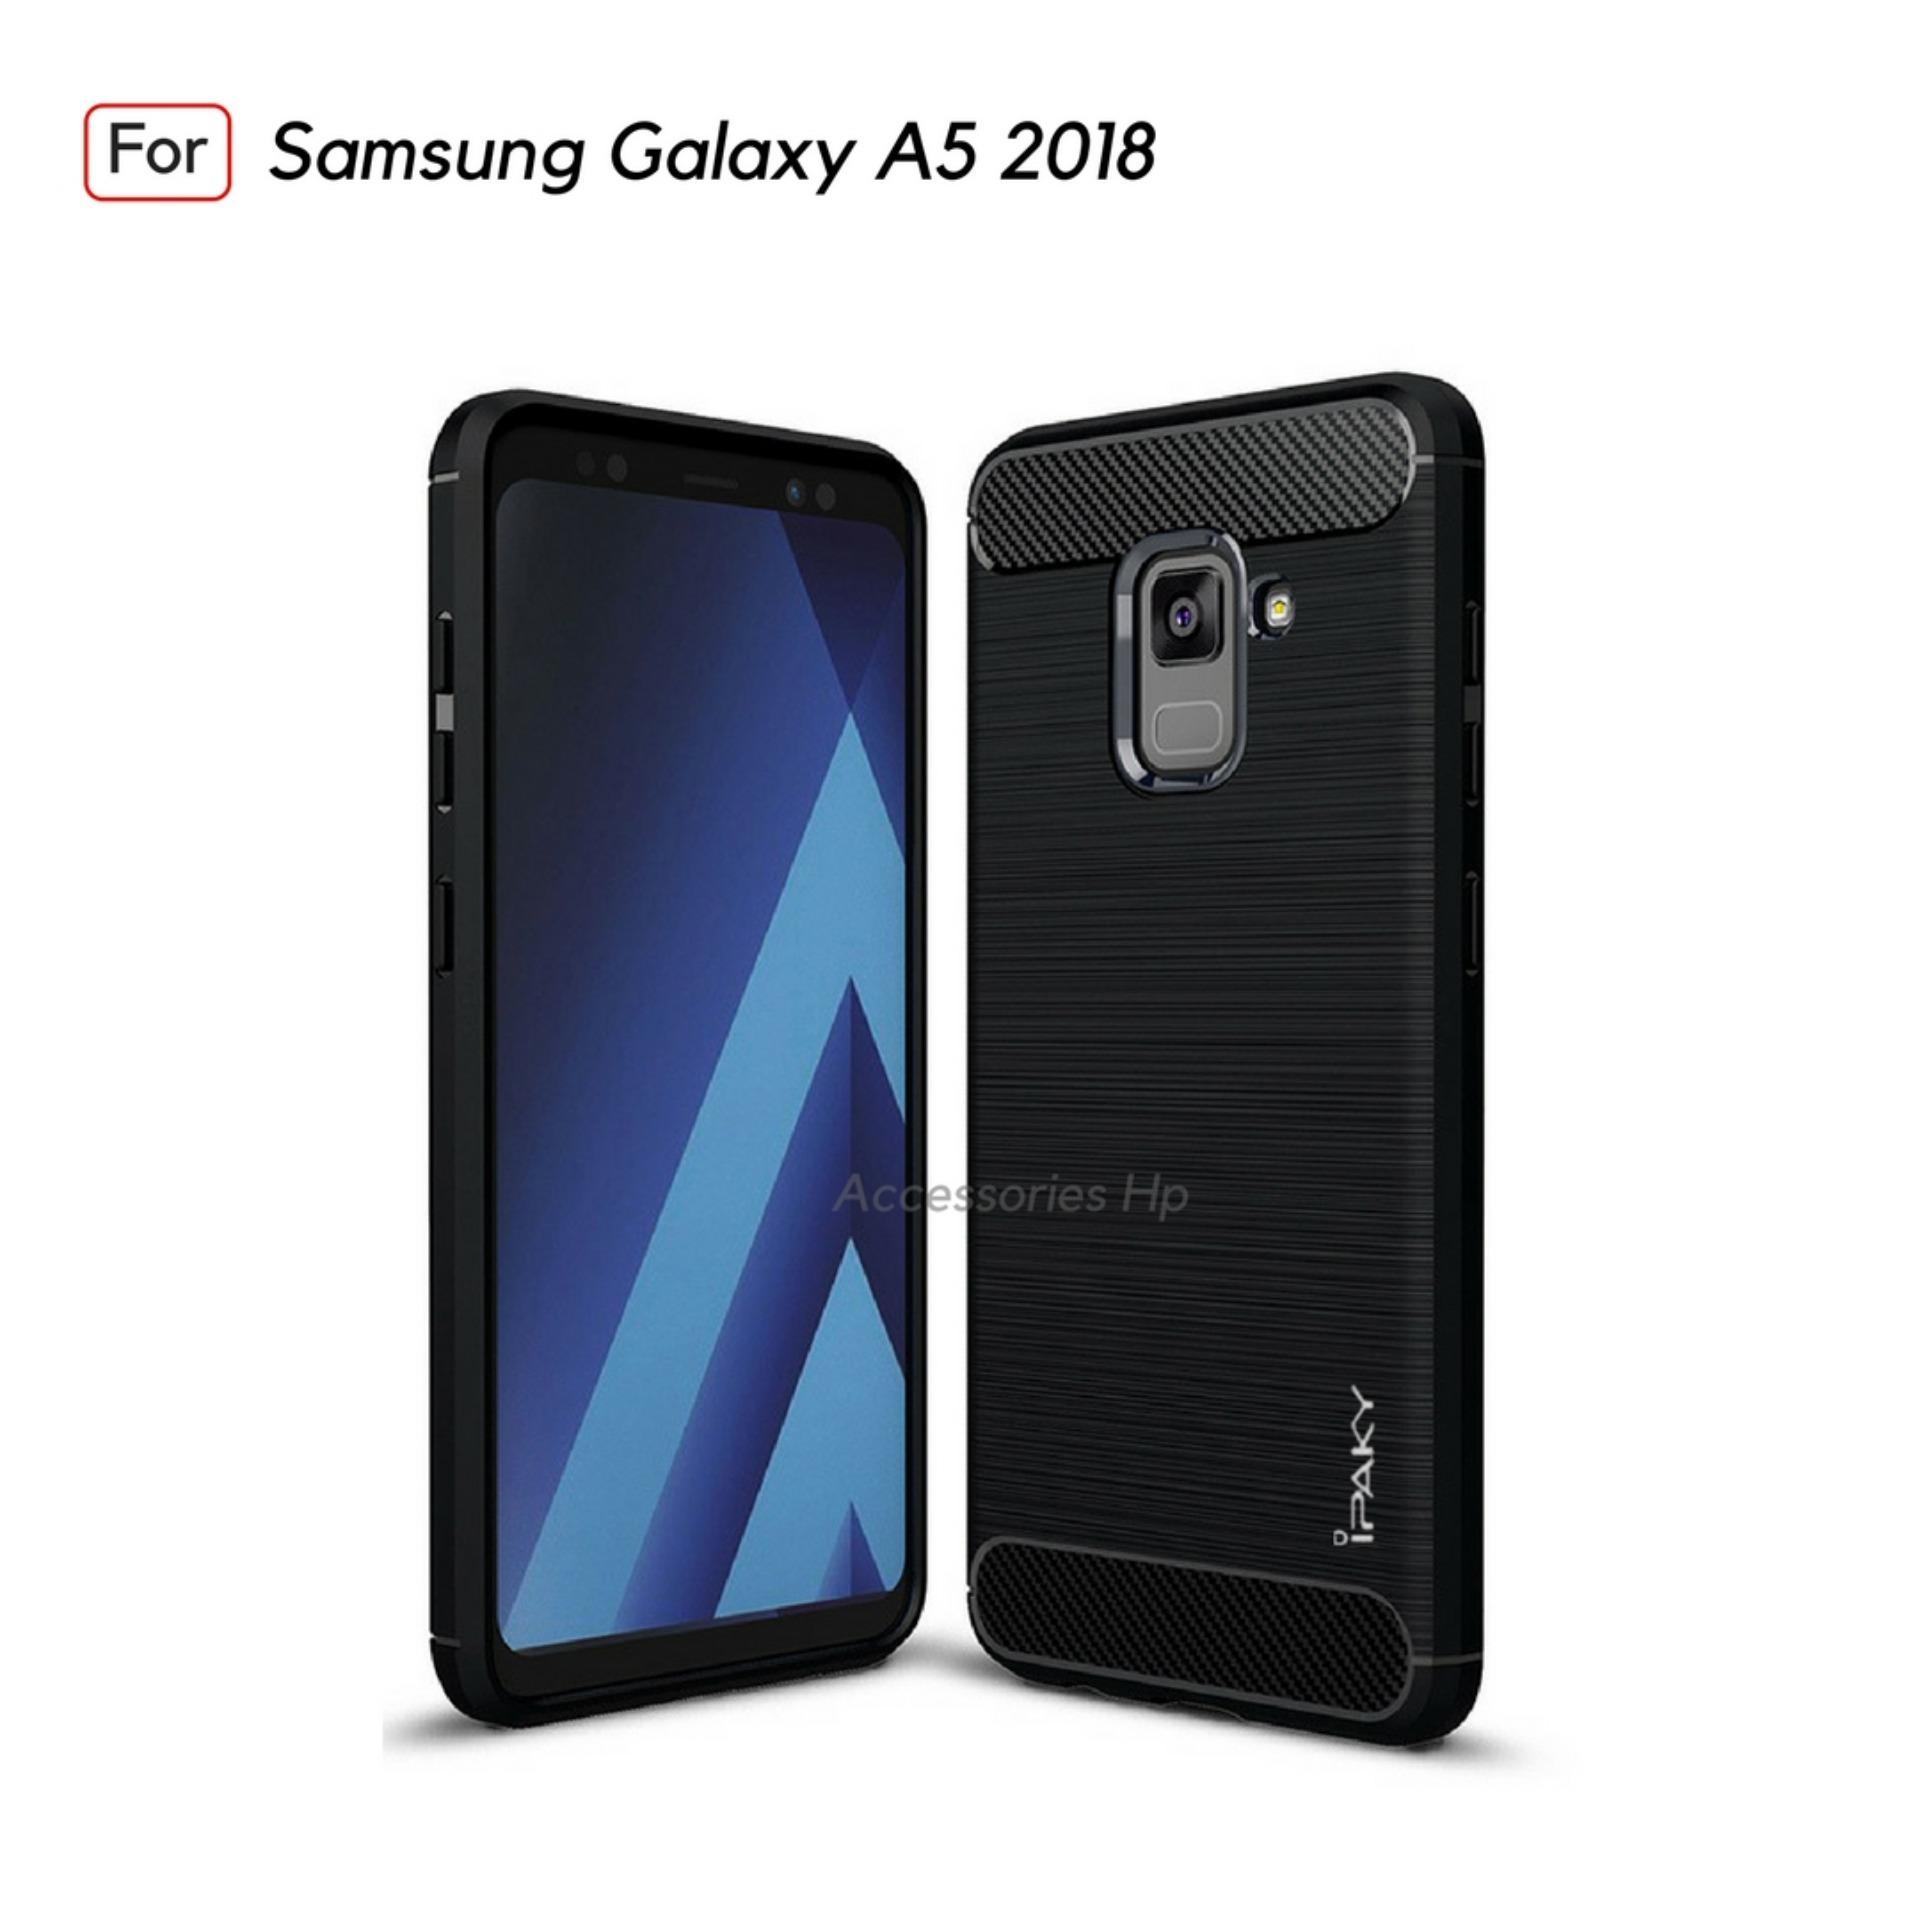 Rp 19.140. Annisa Store Premium Quality Carbon Shockproof Hybrid Case For Samsung Galaxy ...